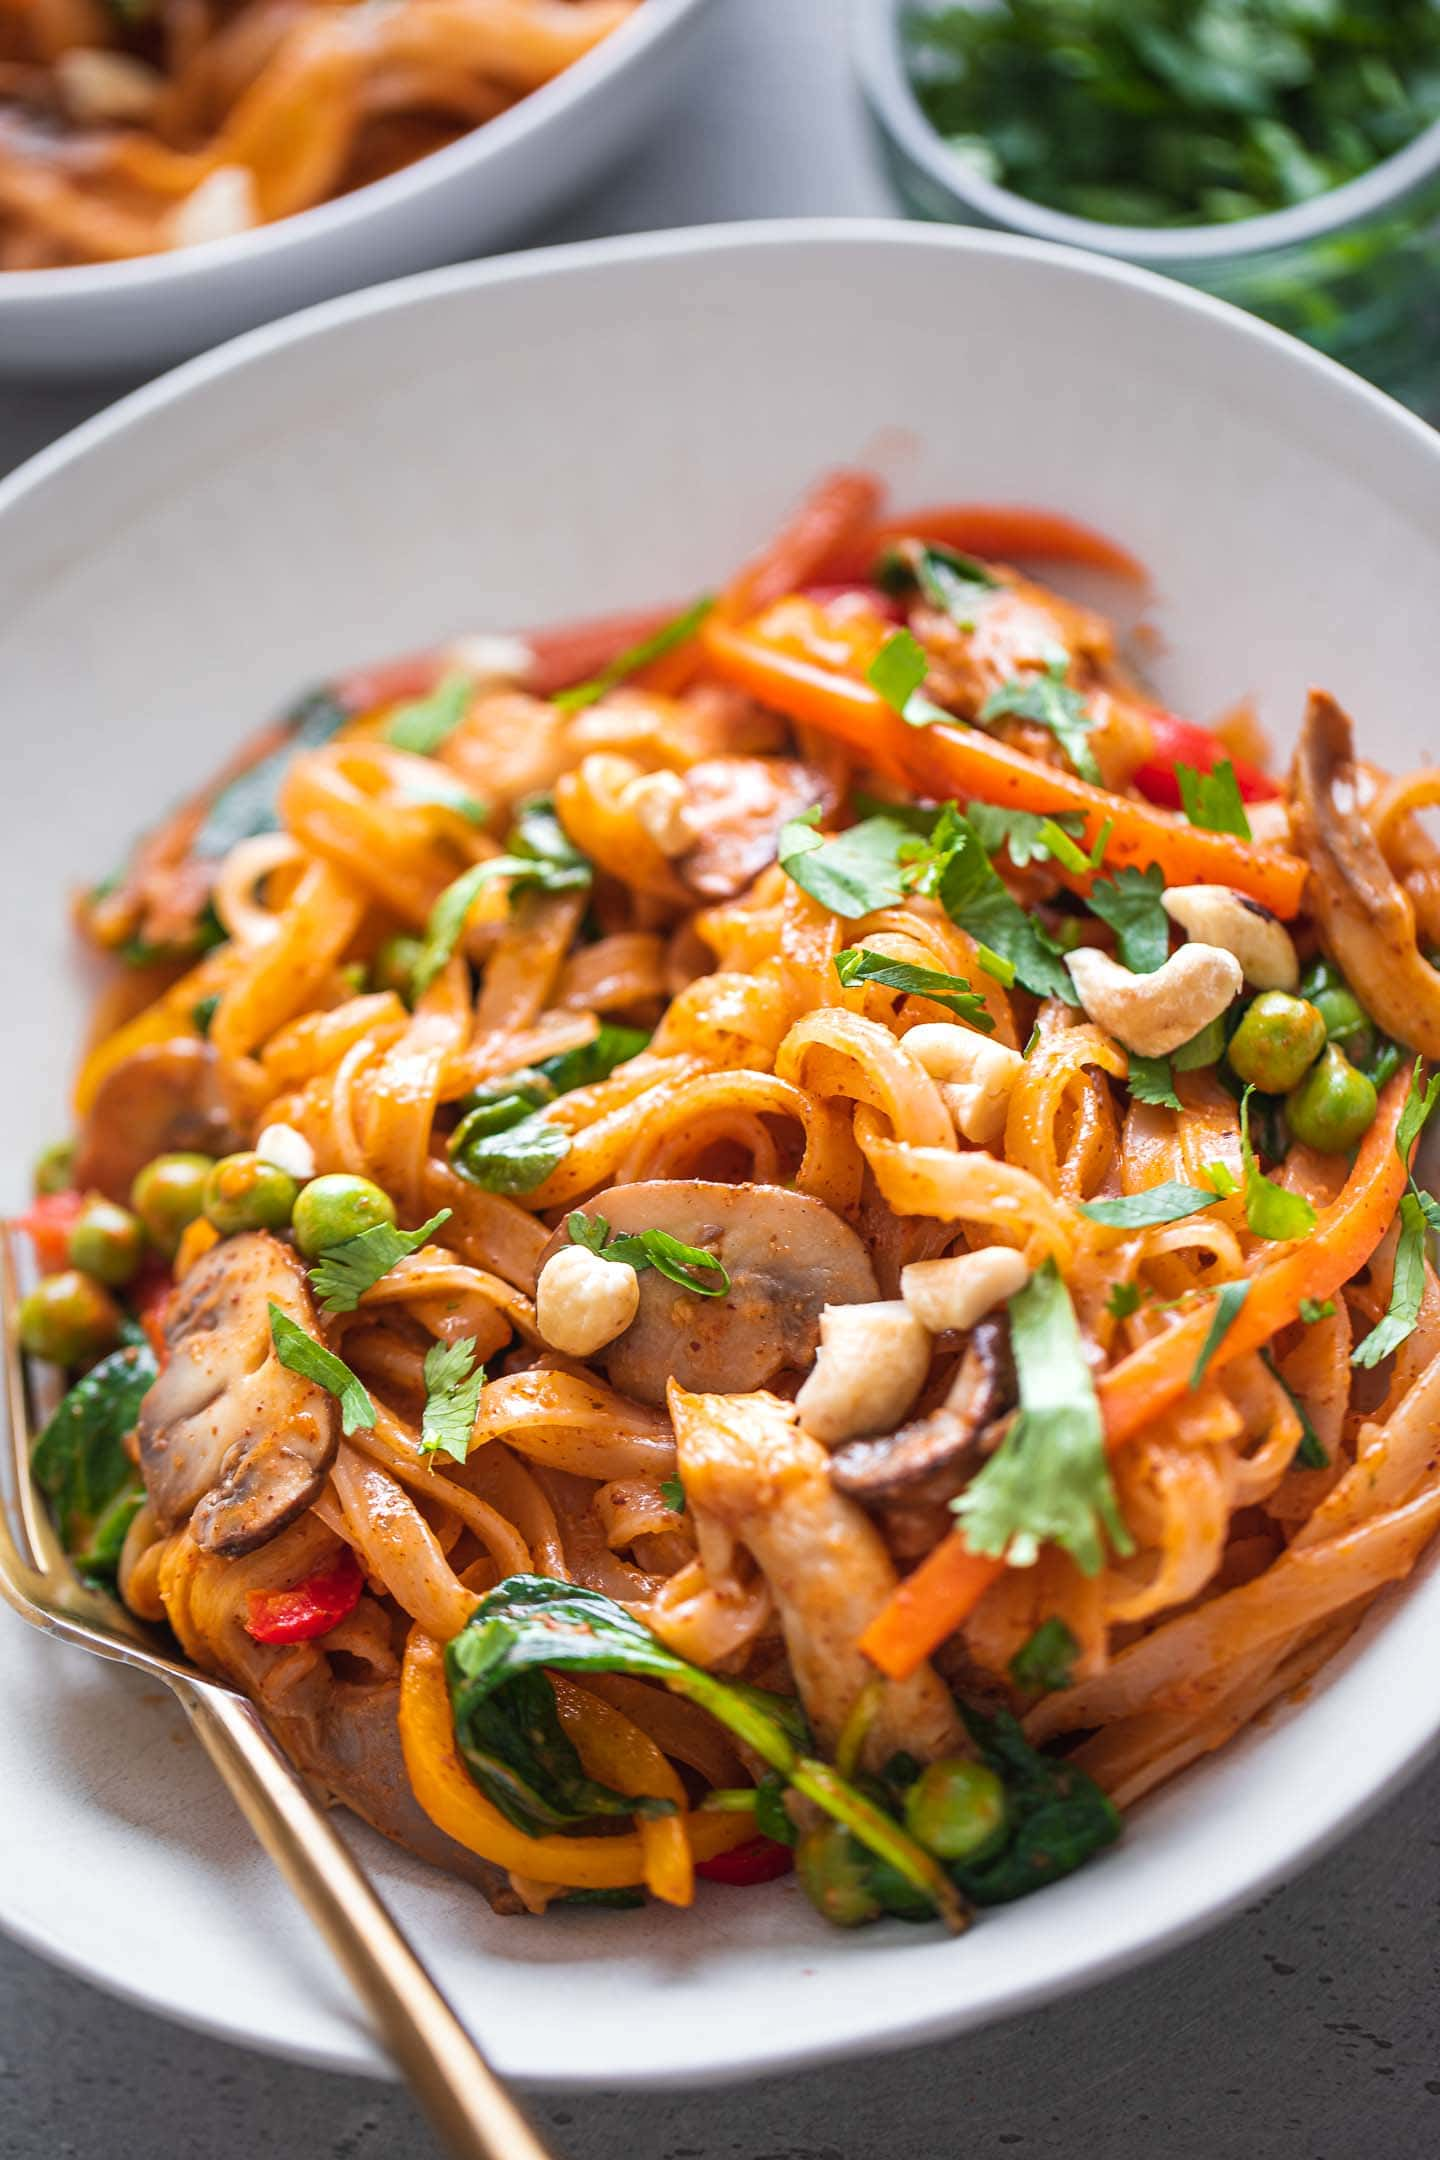 Rice noodle stir-fry with vegetables and peas